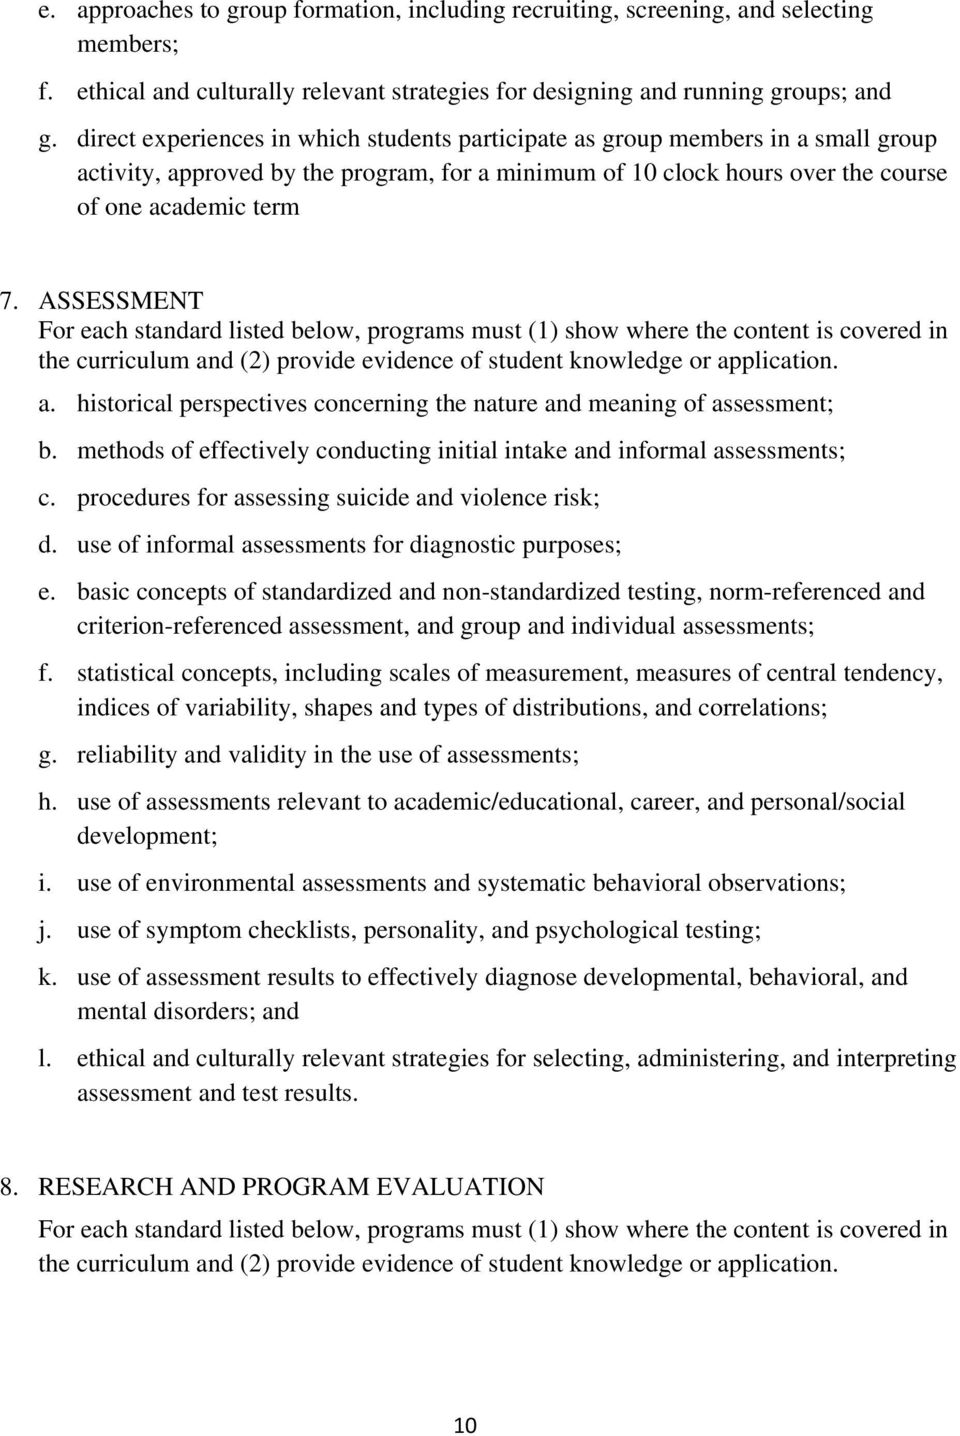 ASSESSMENT For each standard listed below, programs must (1) show where the content is covered in the curriculum and (2) provide evidence of student knowledge or application. a. historical perspectives concerning the nature and meaning of assessment; b.